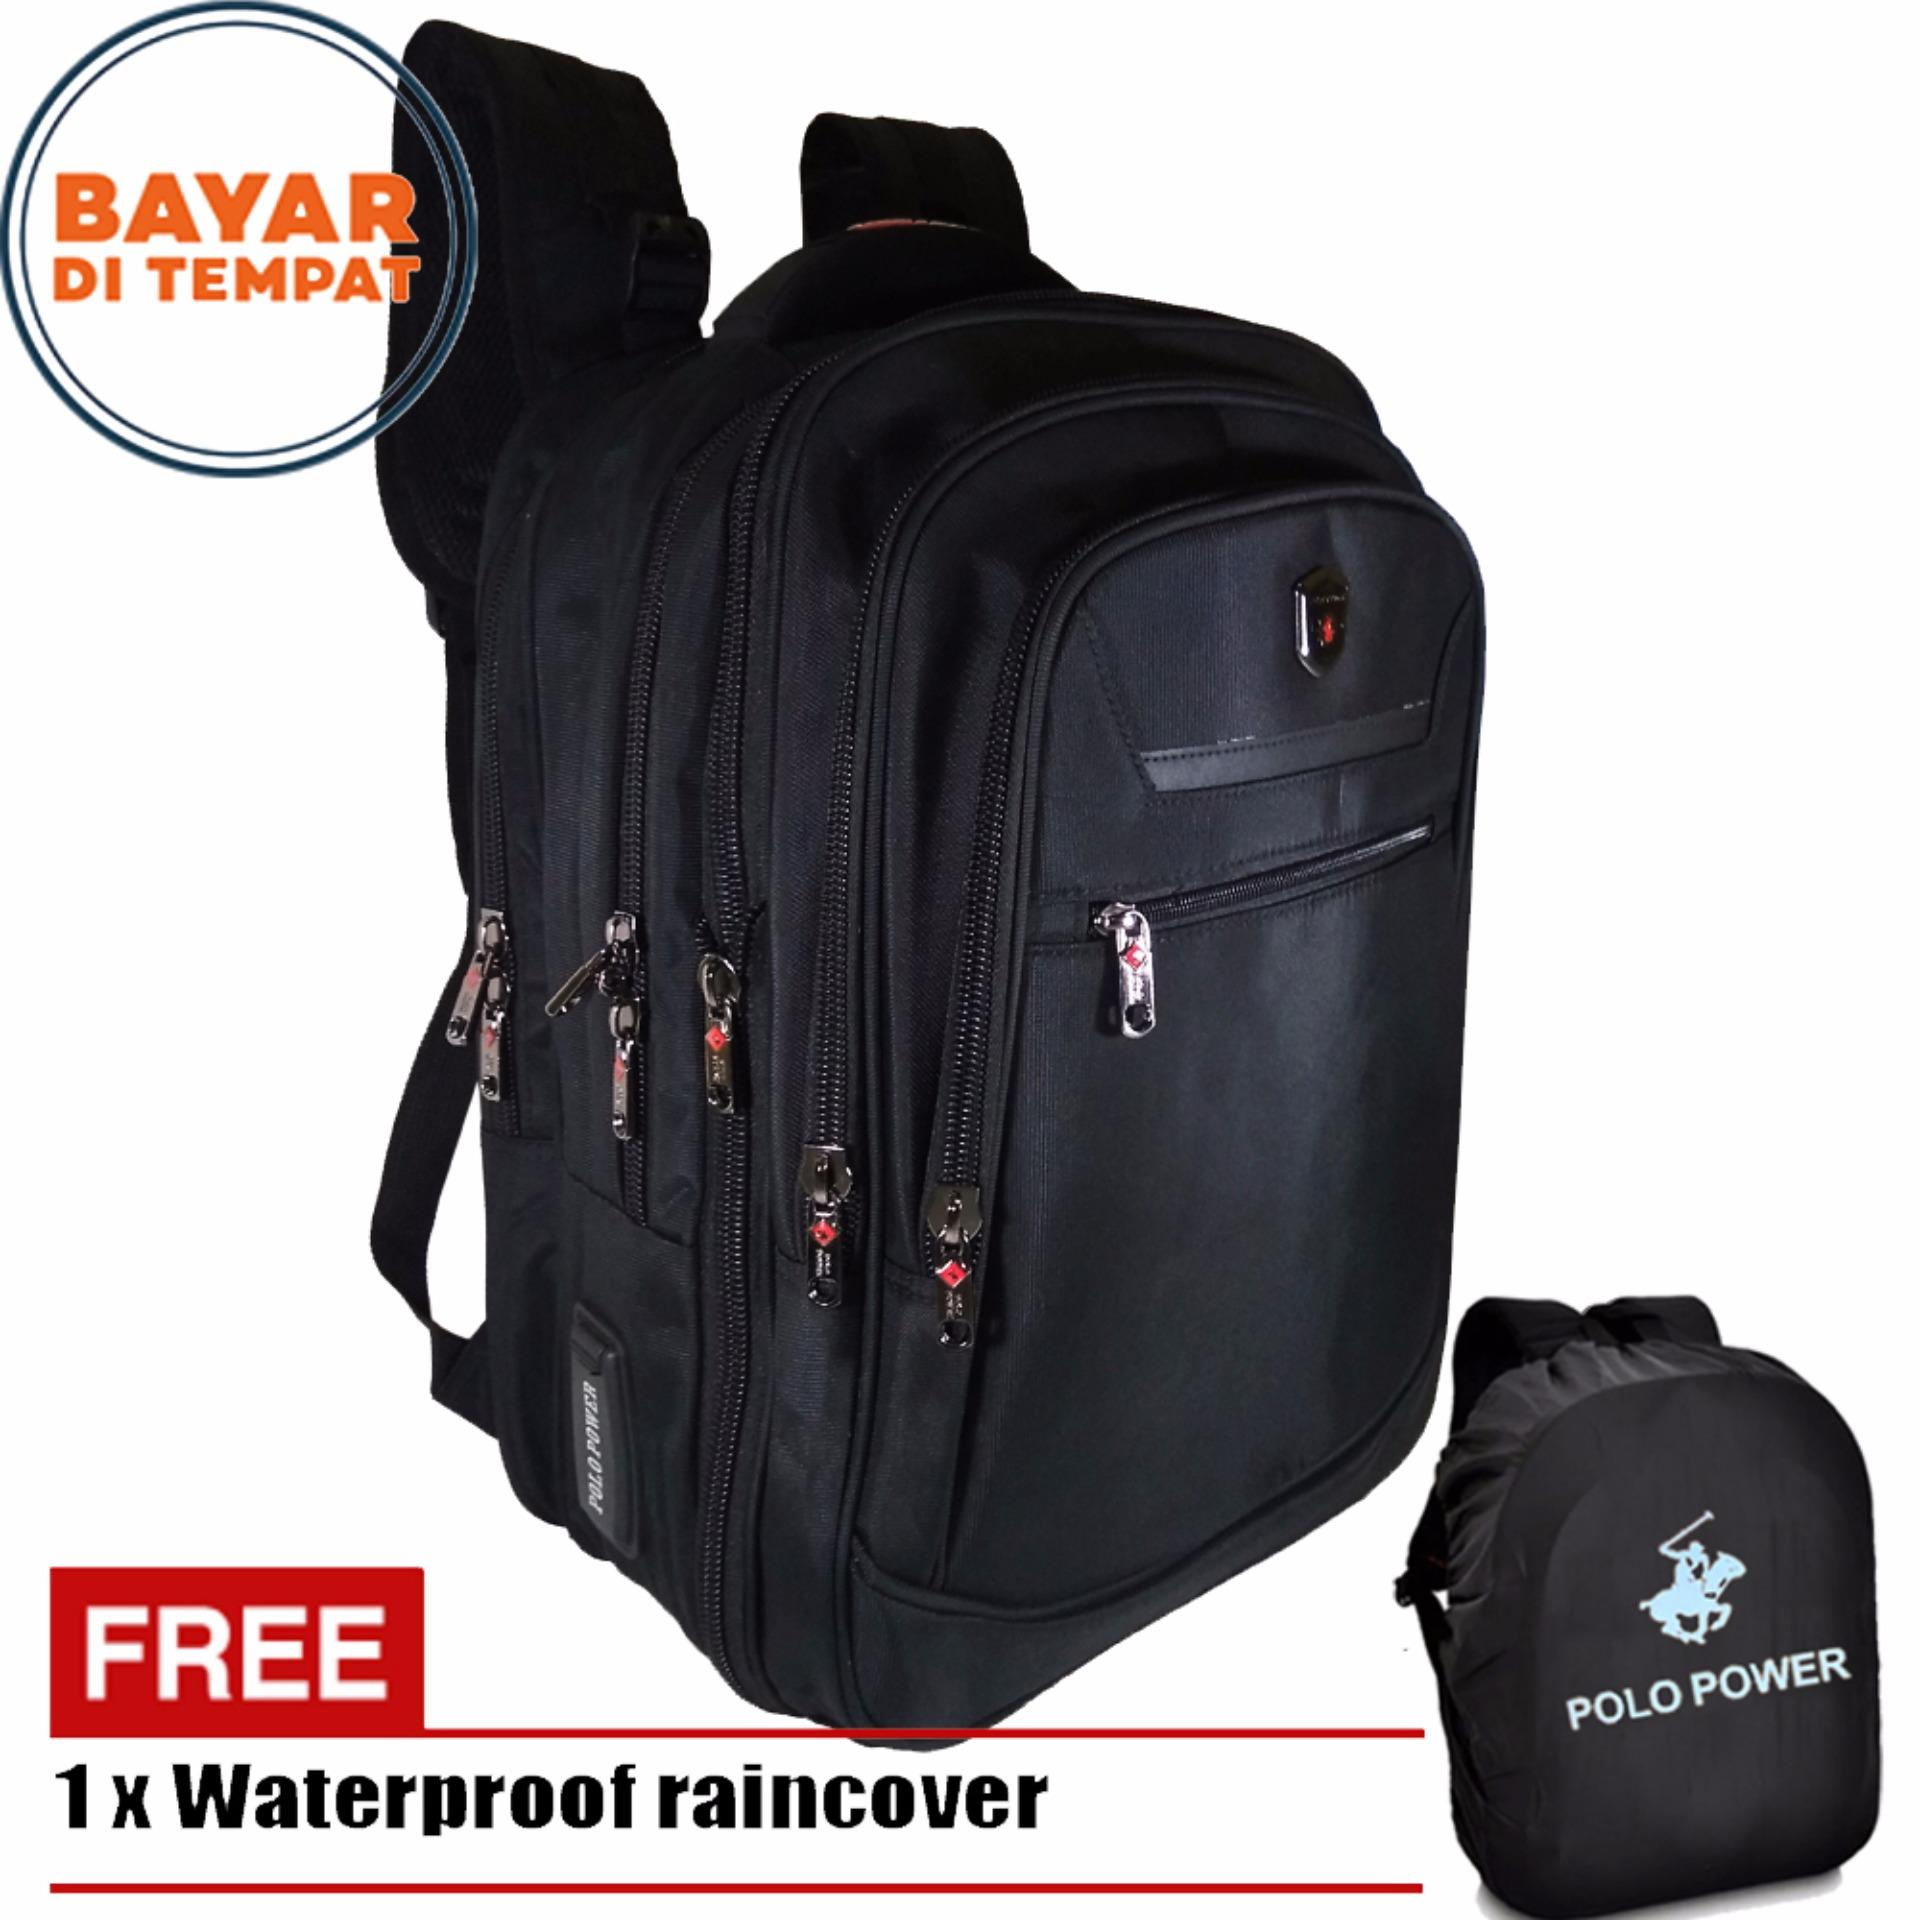 Beli Polo Power Tas Ransel Pria 18 Inchi Expandable 185003 Highest Spec Polo Backpack Import Original Black Raincover Online Murah